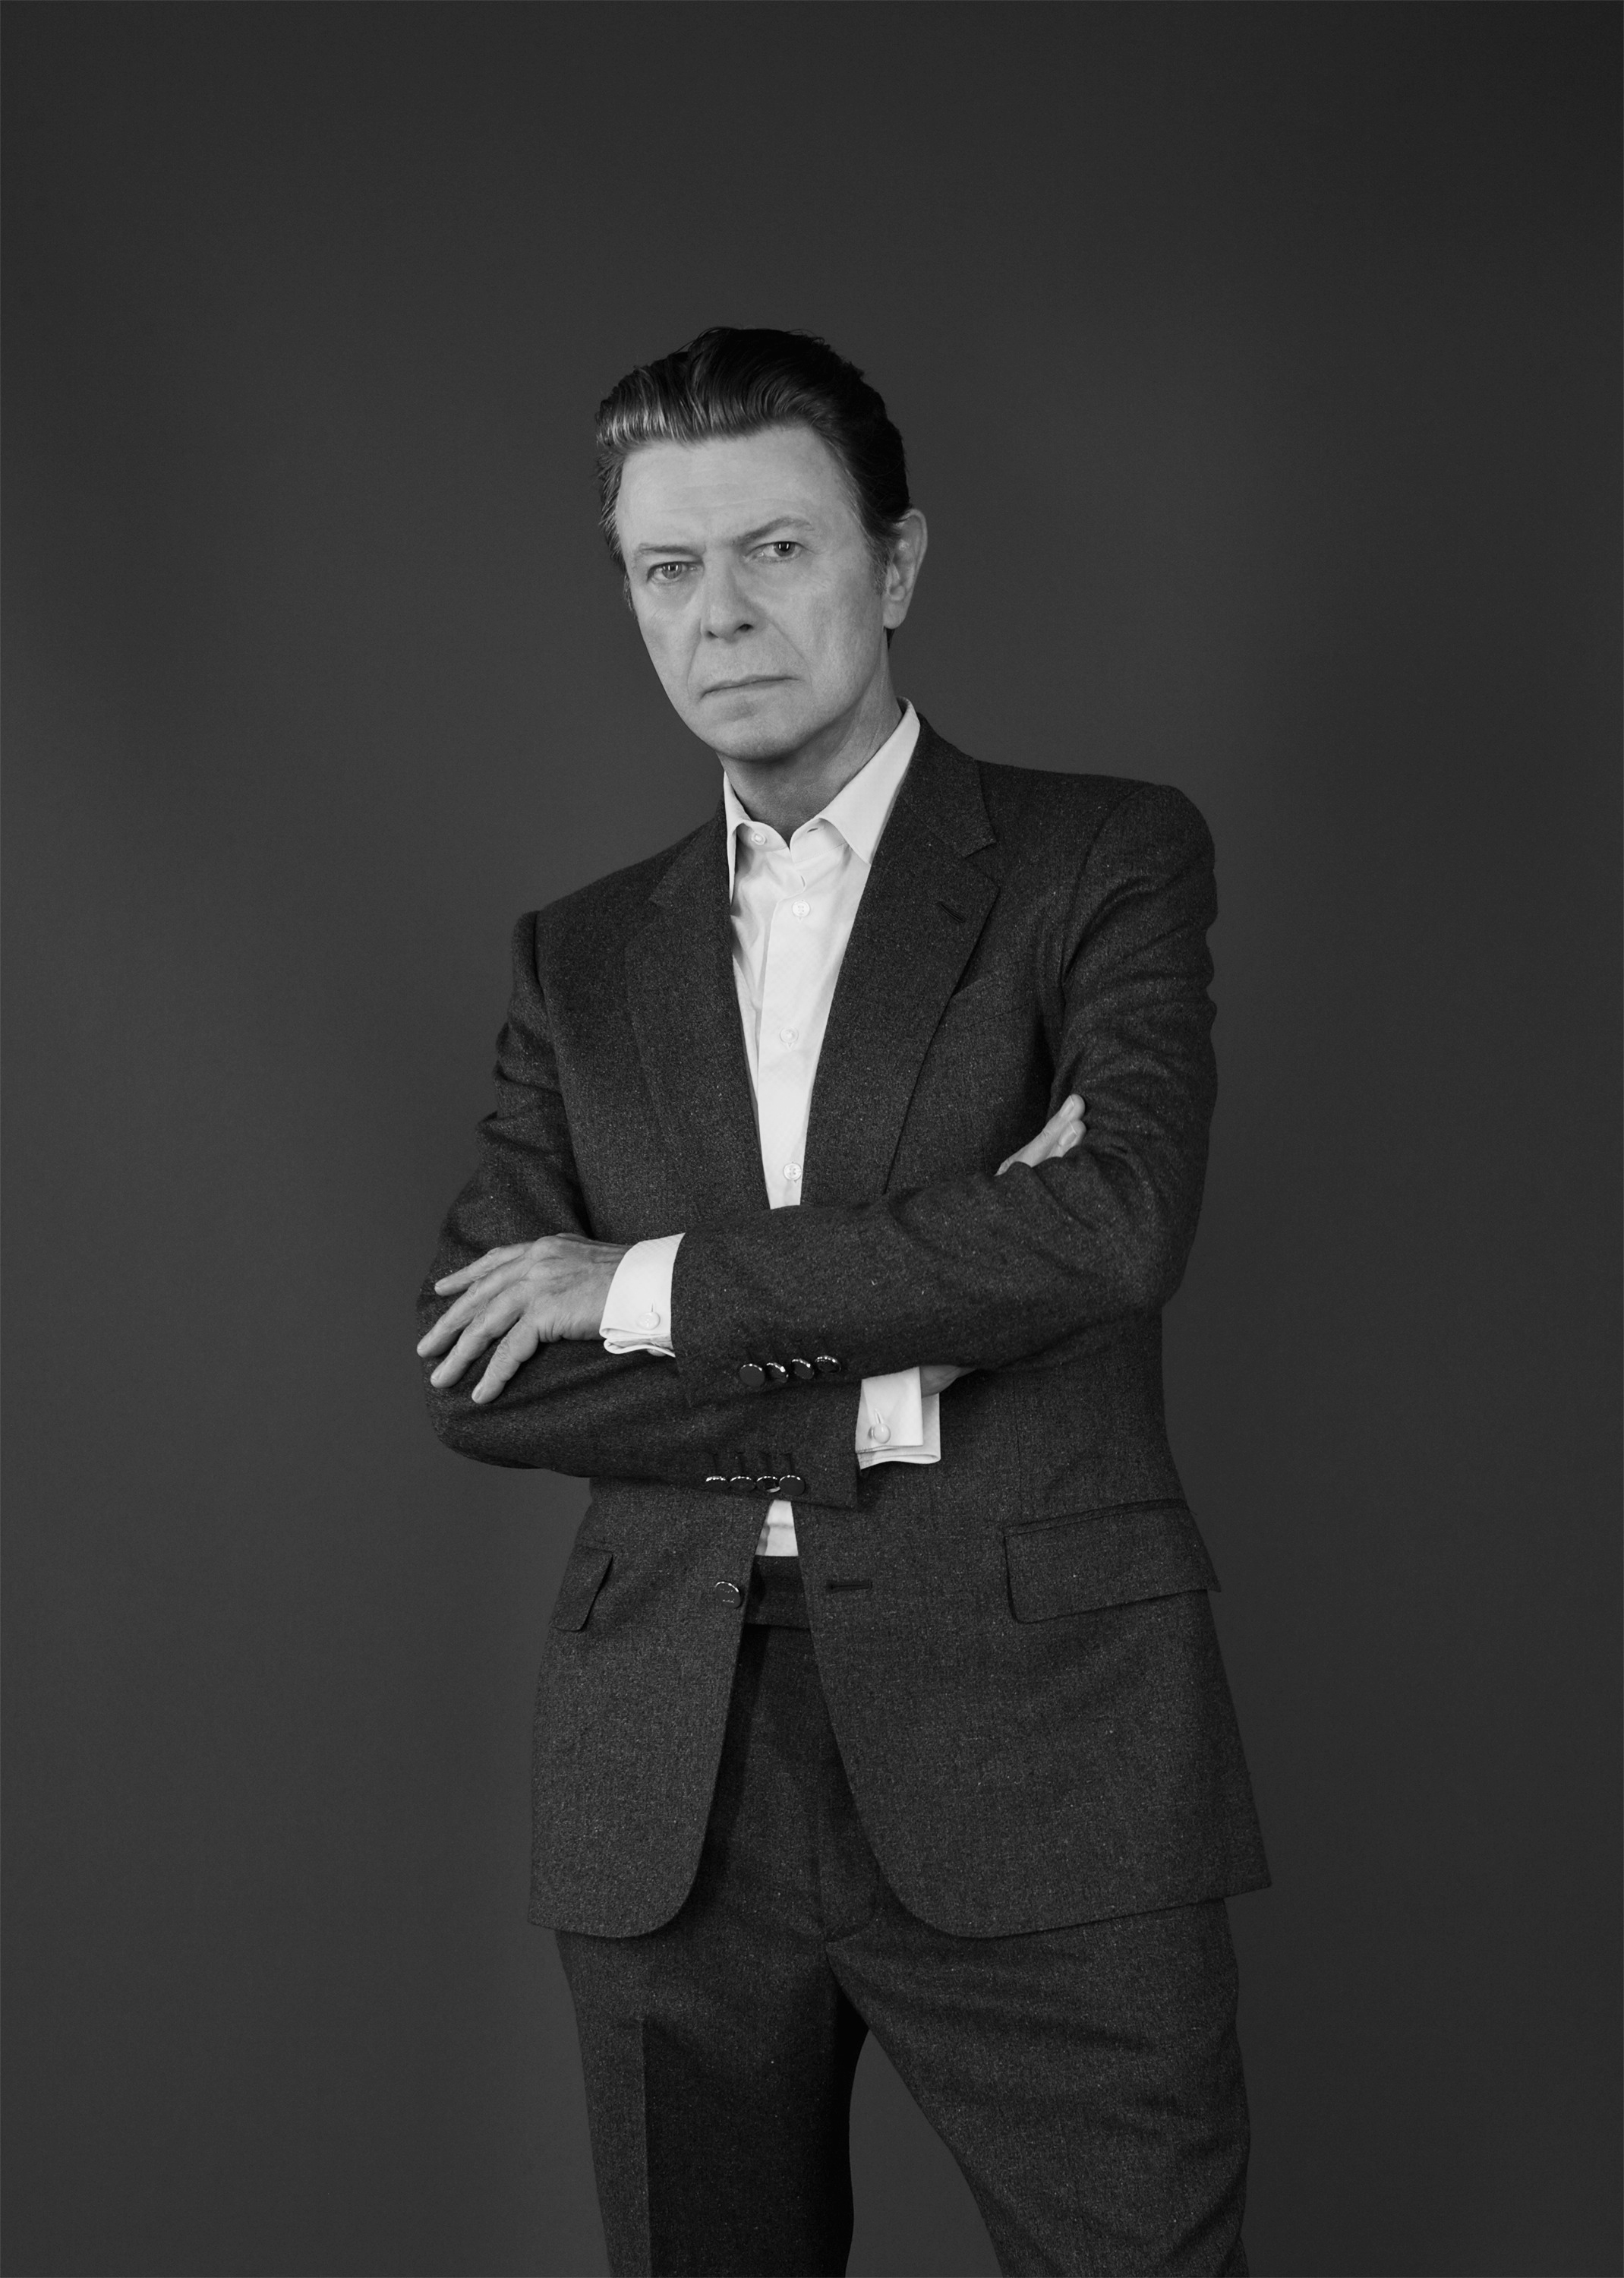 David Bowie in 2015.